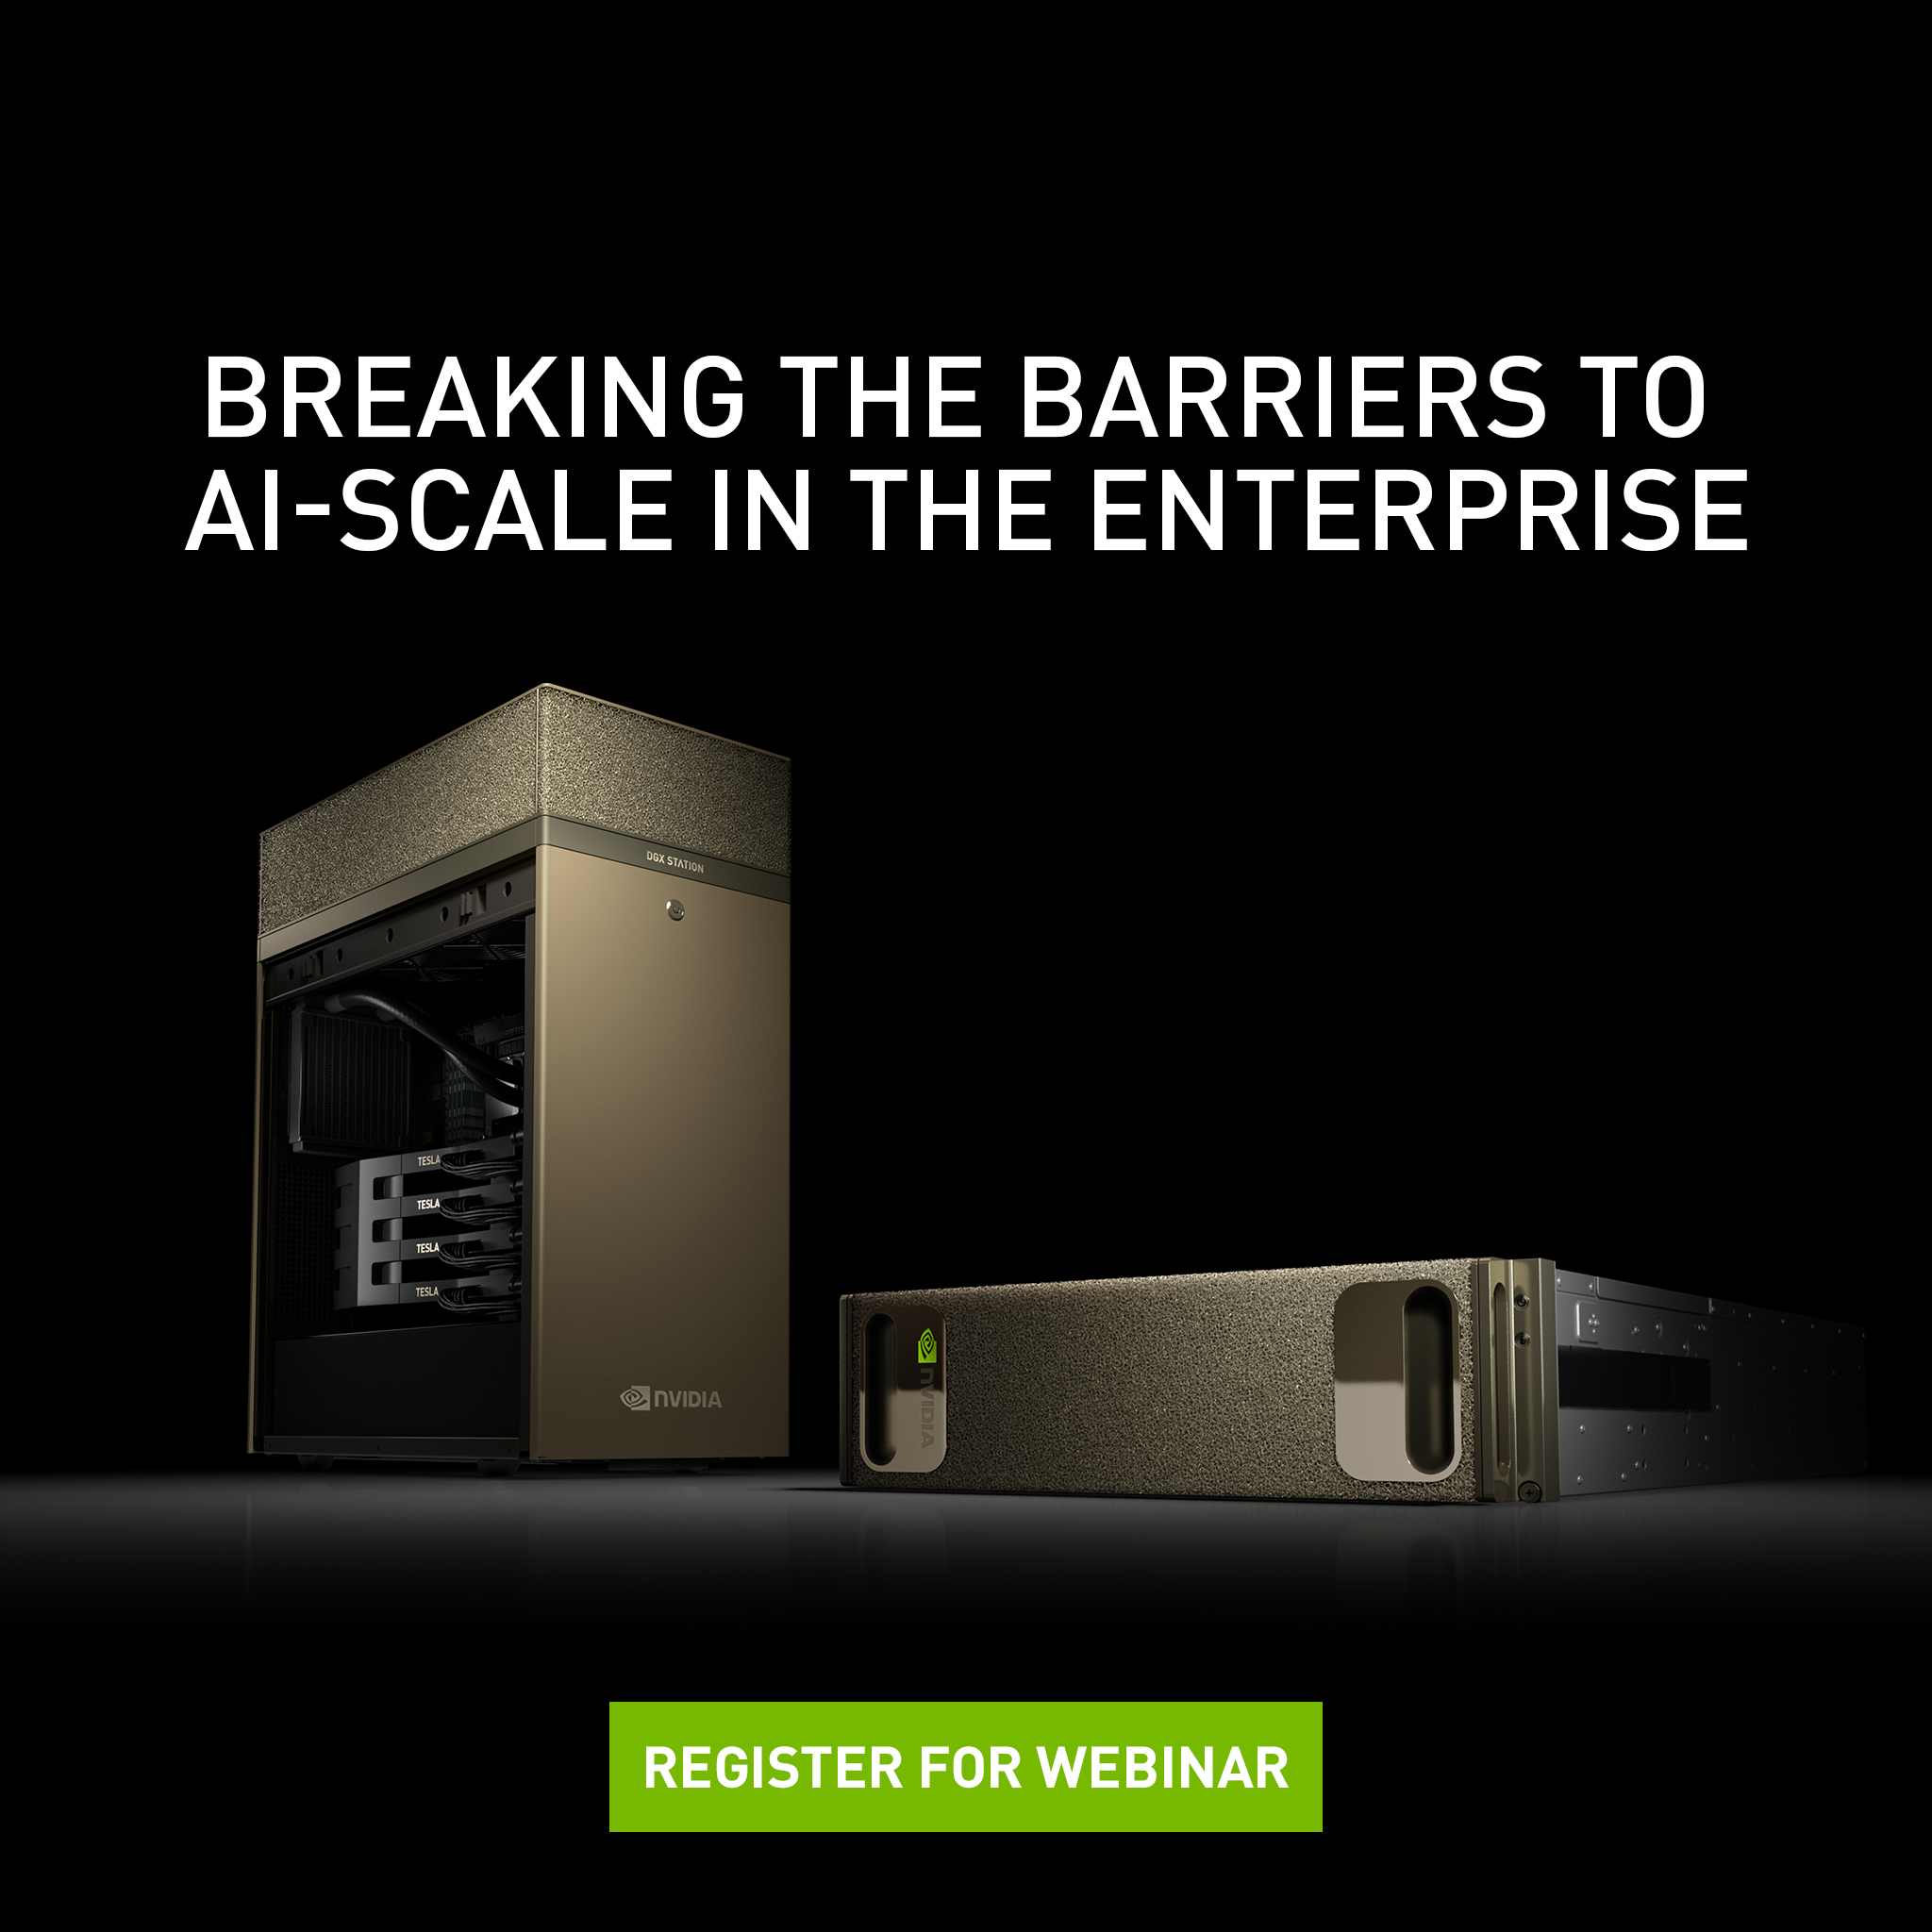 NVIDIA DGX-2 - Breaking the Barriers to AI-Scale in the Enterprise